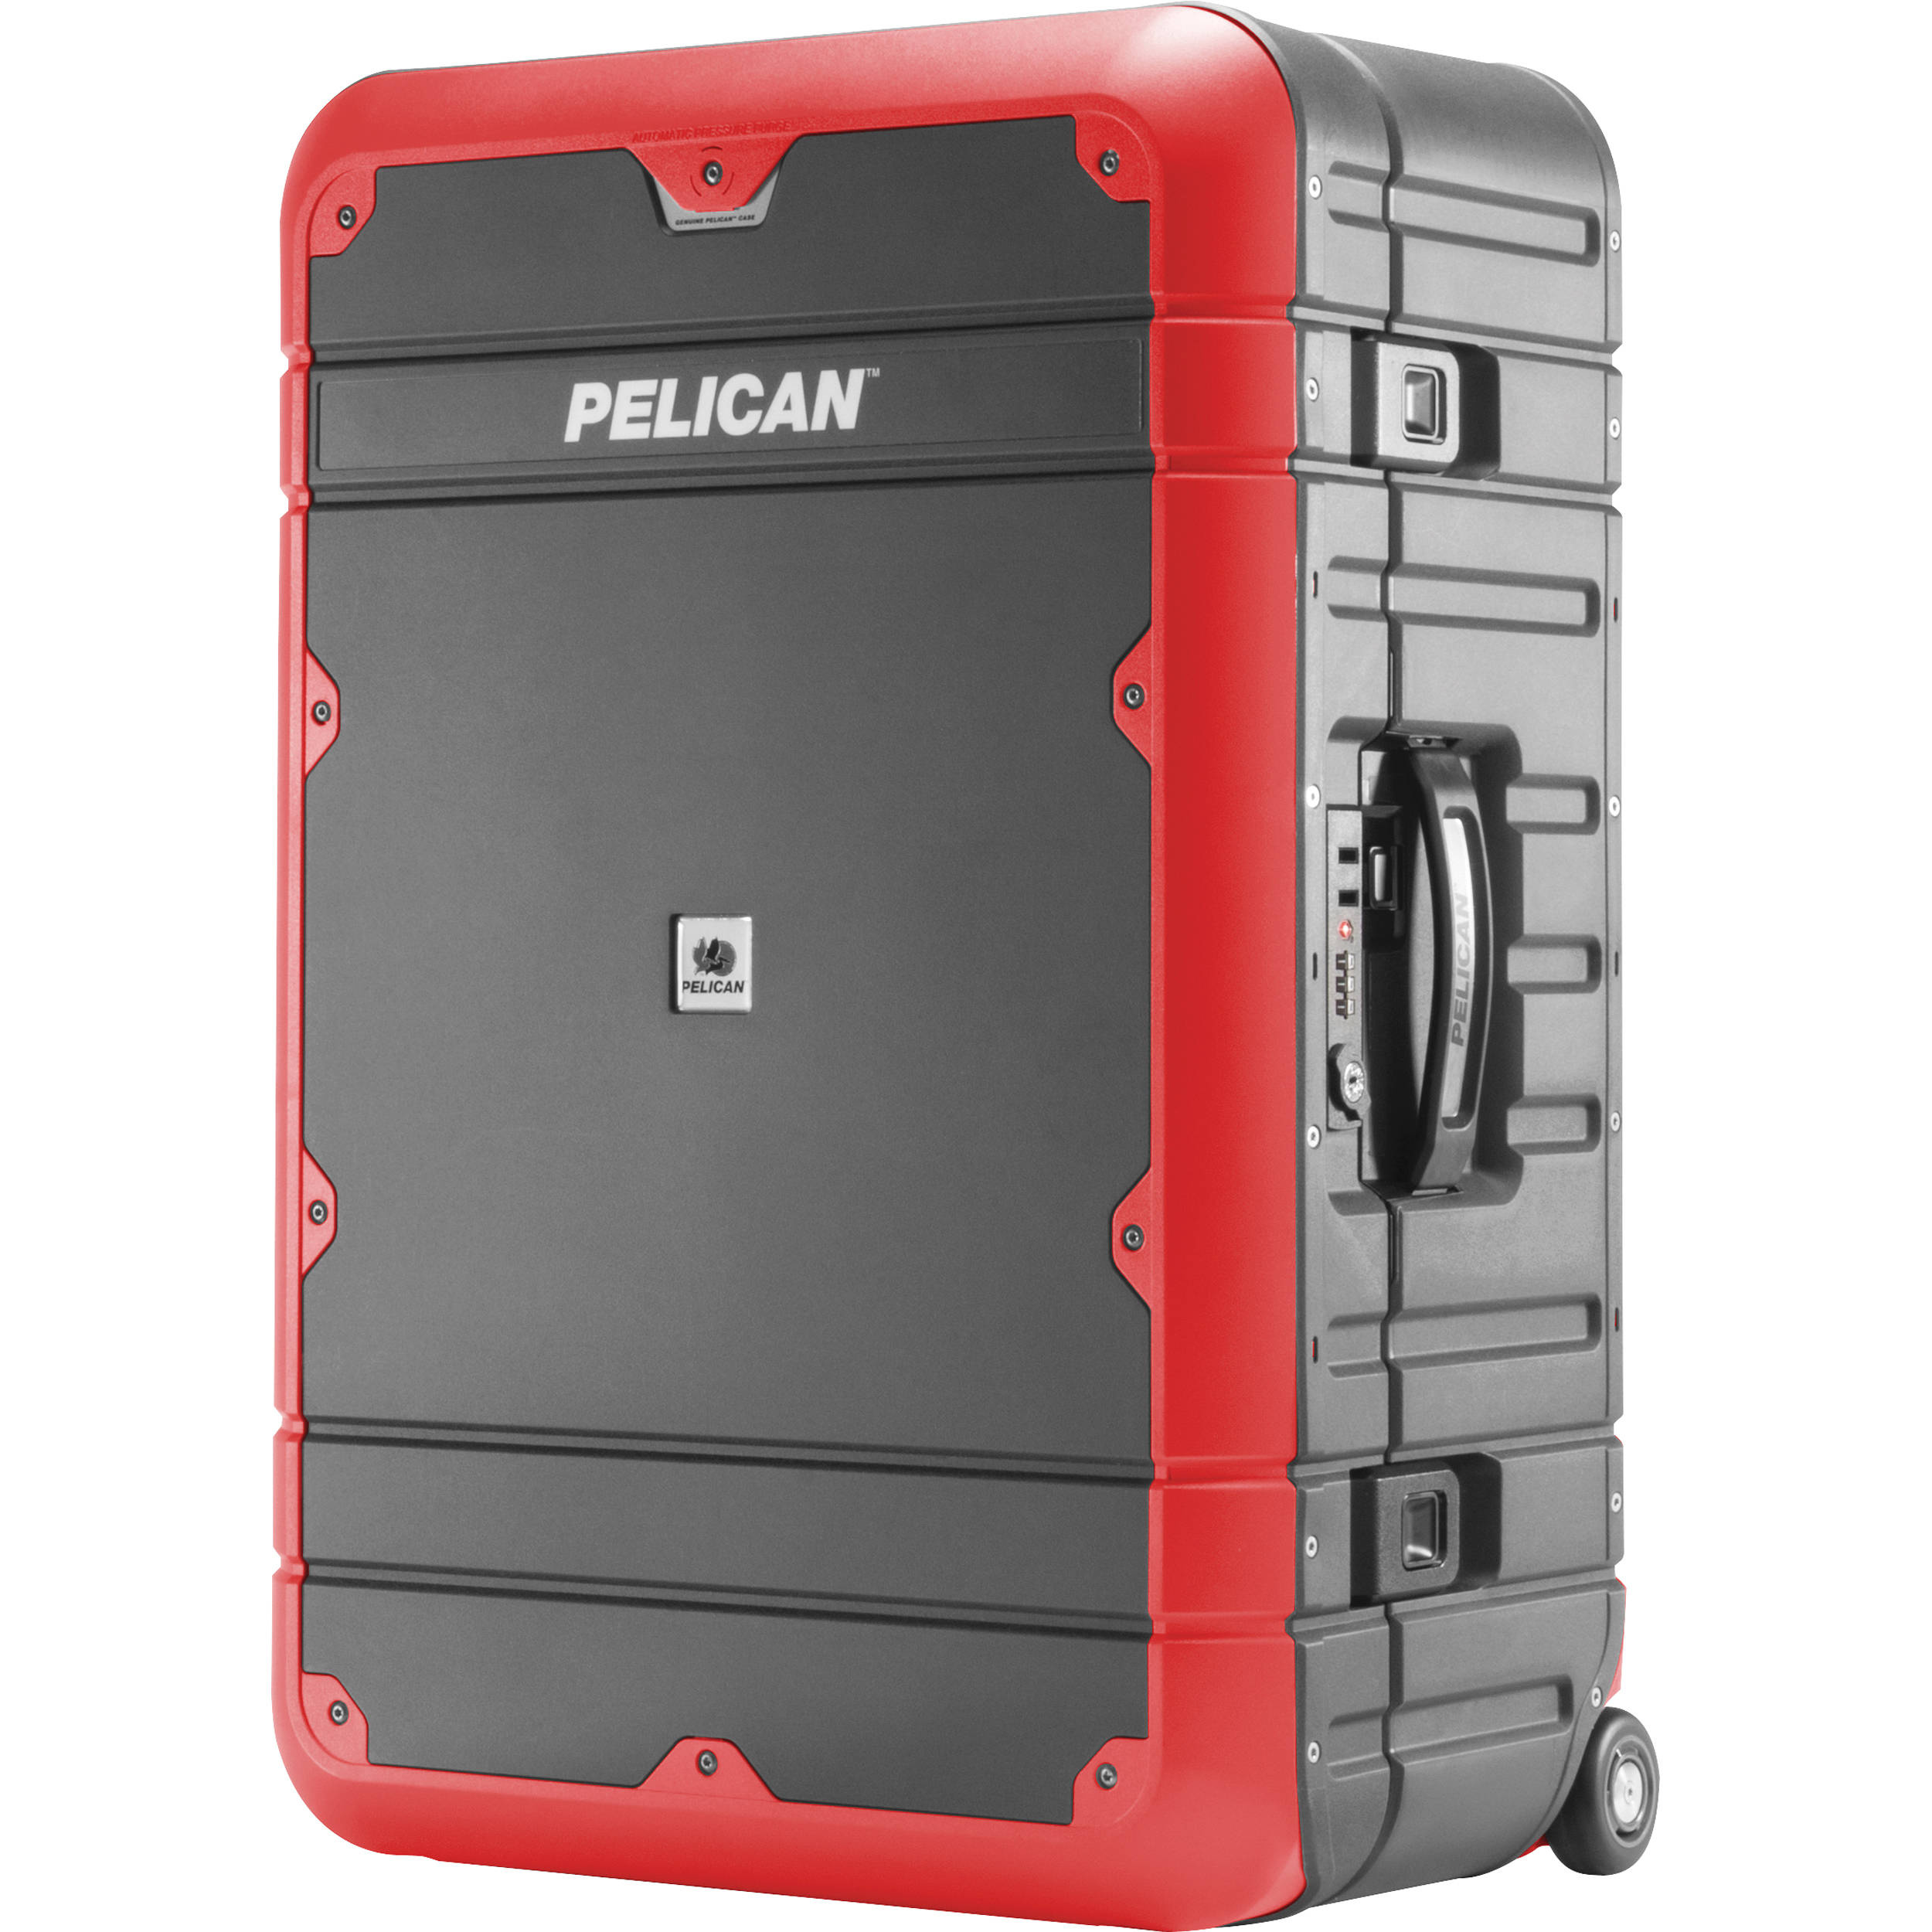 Pelican EL27 Elite Weekender Luggage with Enhanced Travel System (Grey and Red)